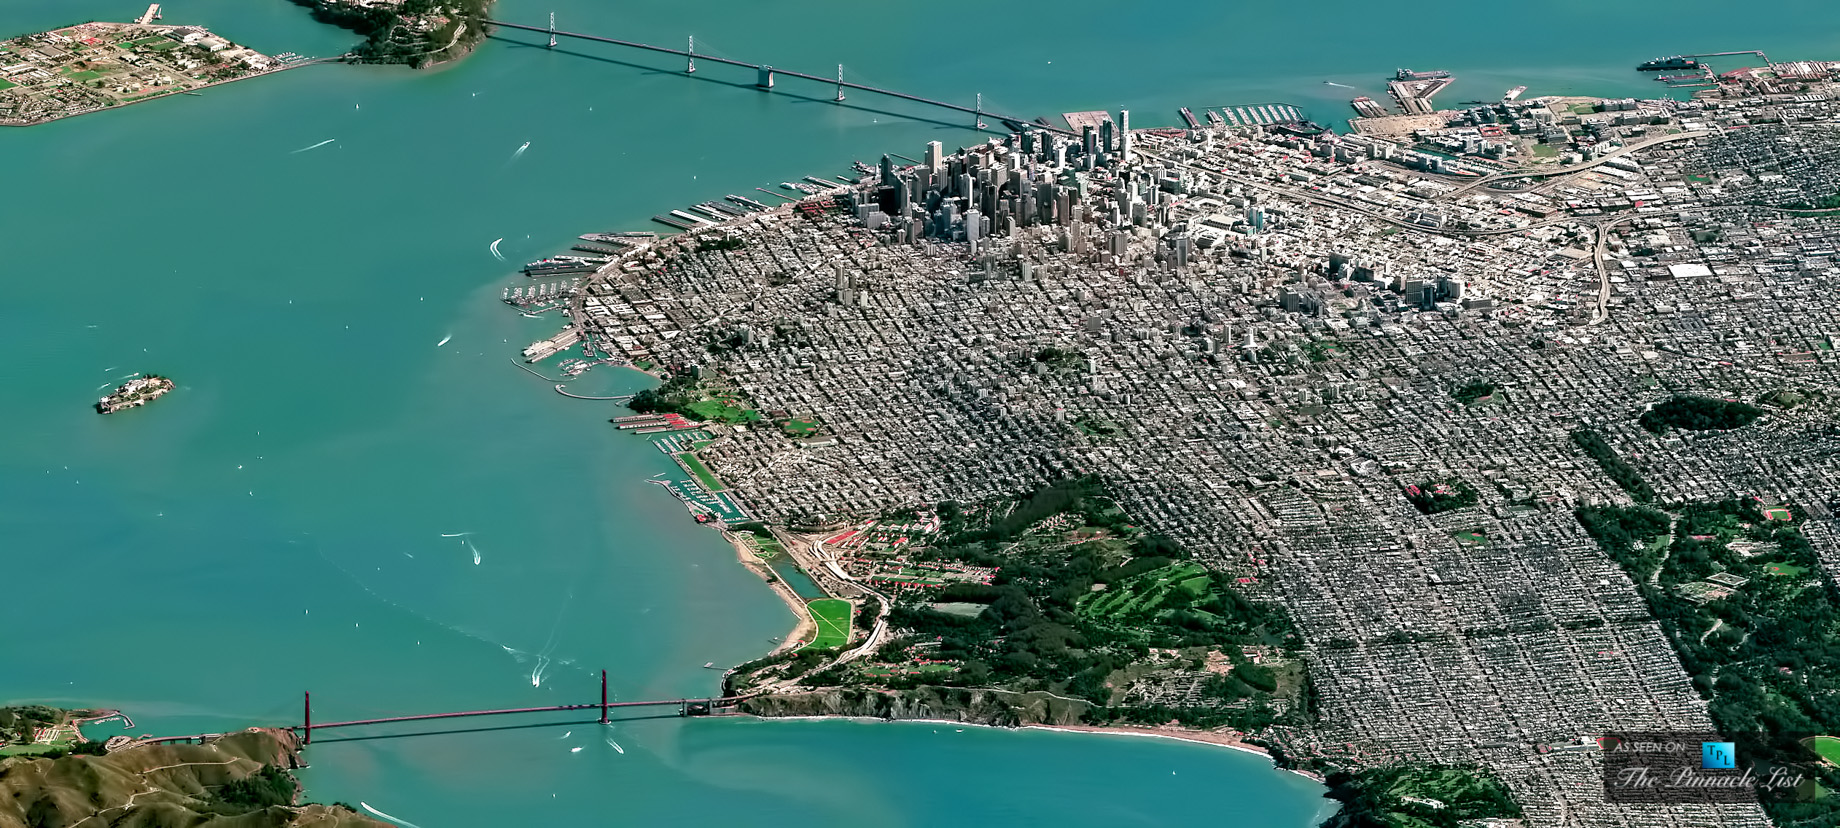 Aerial View of San Francisco - One of the Hottest Housing Markets in America